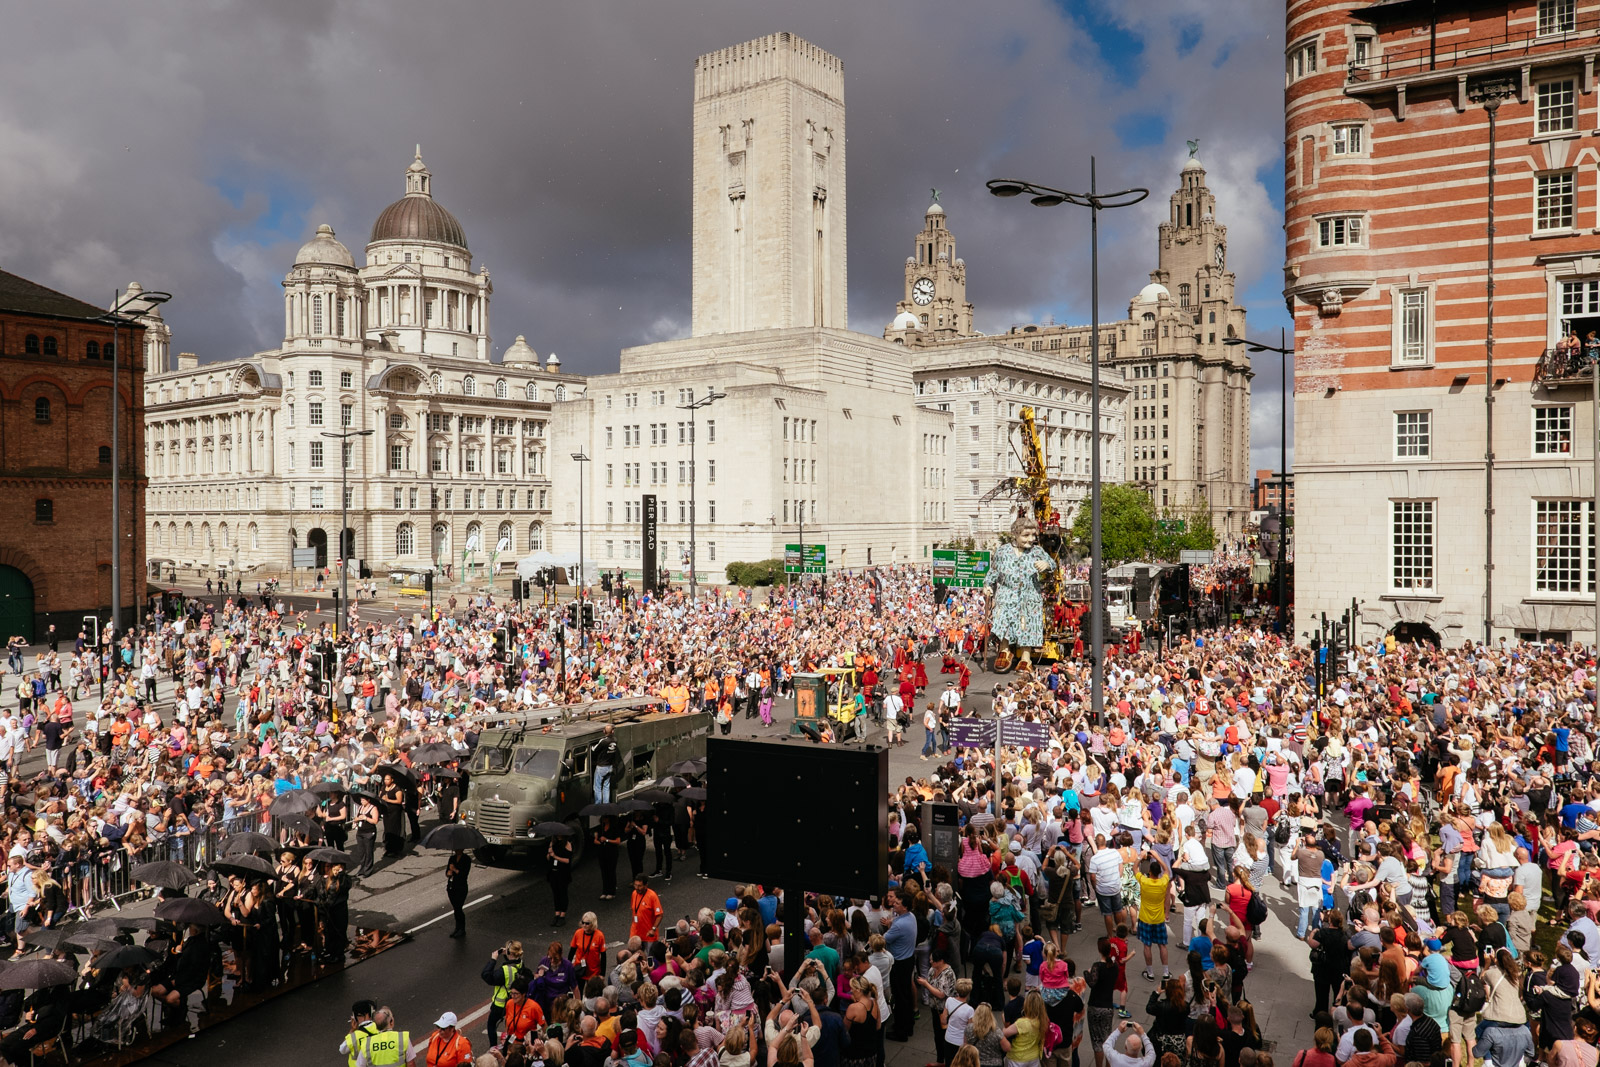 giants-liverpool-sunday-2014-pete-carr-3087